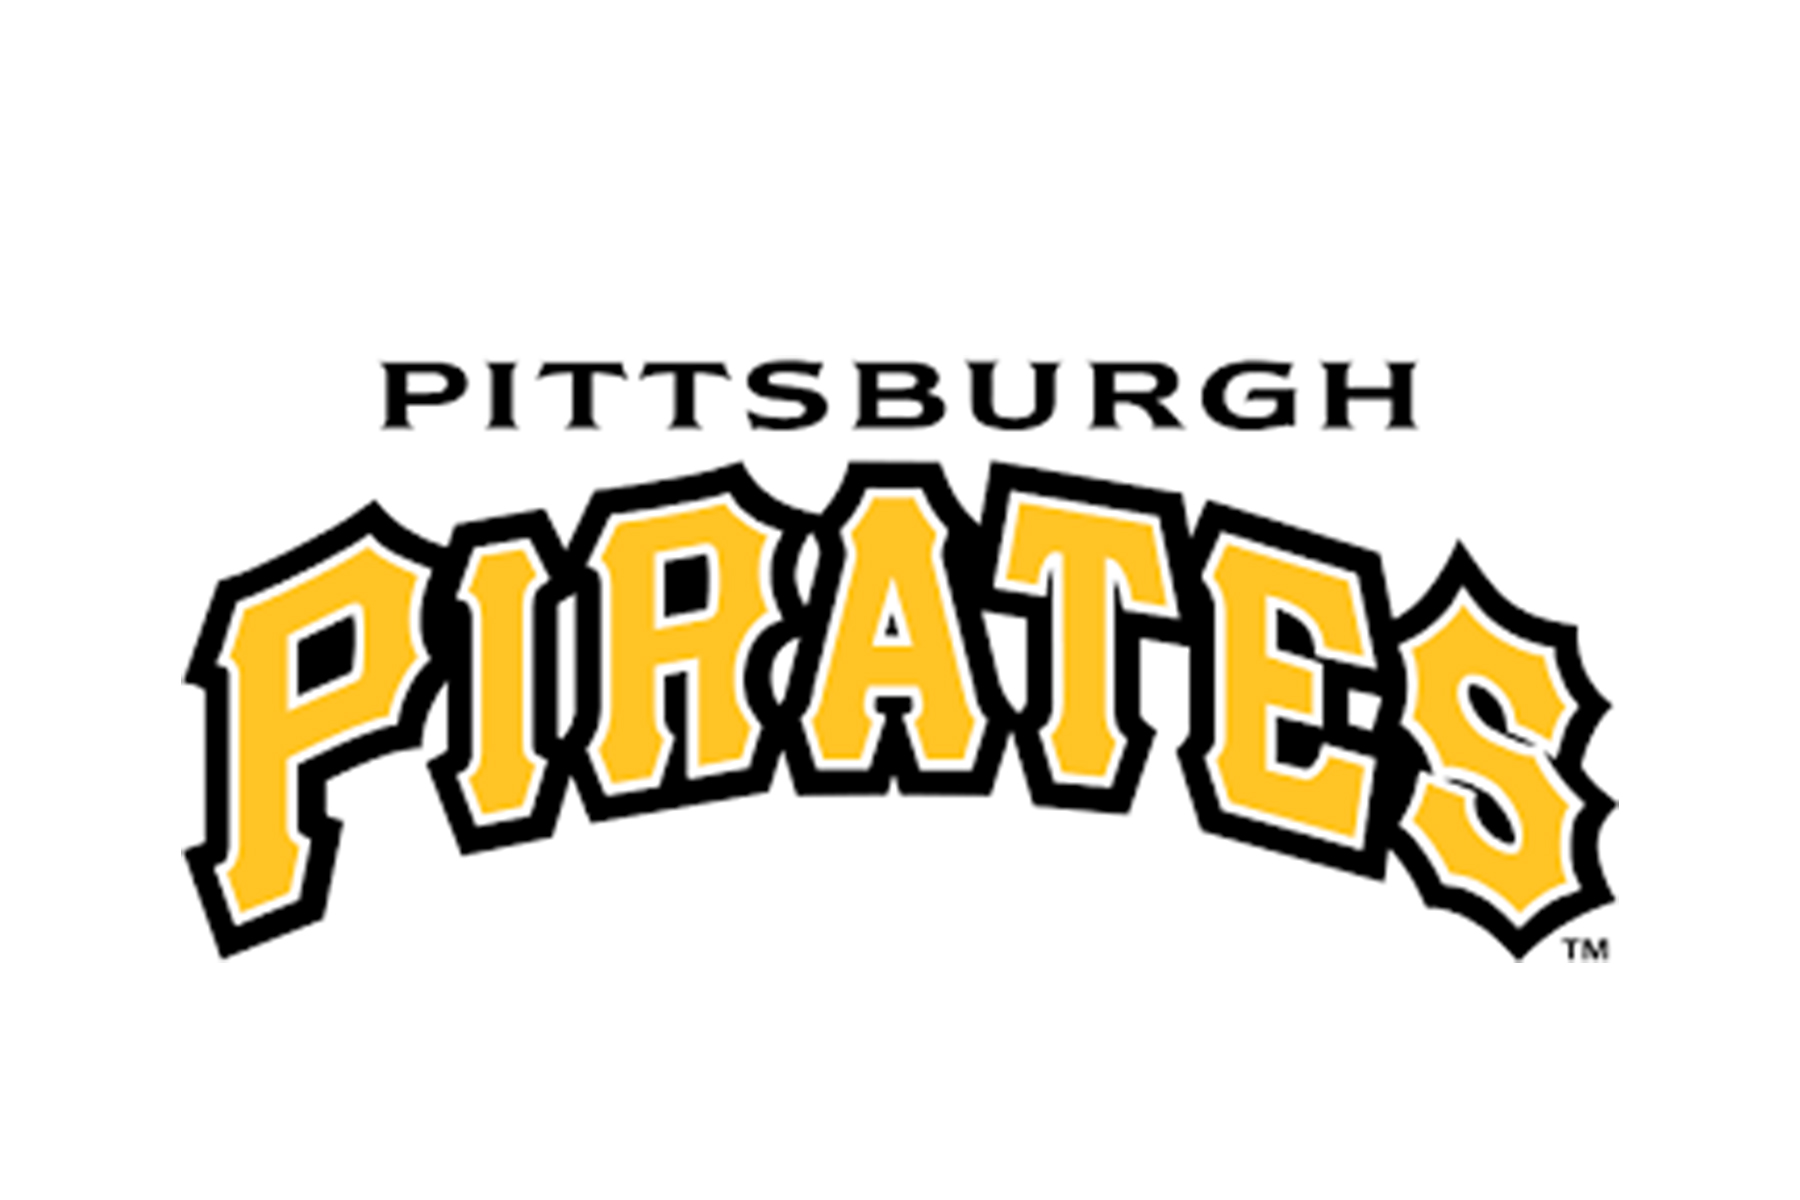 Pittsburgh Pirates.jpg